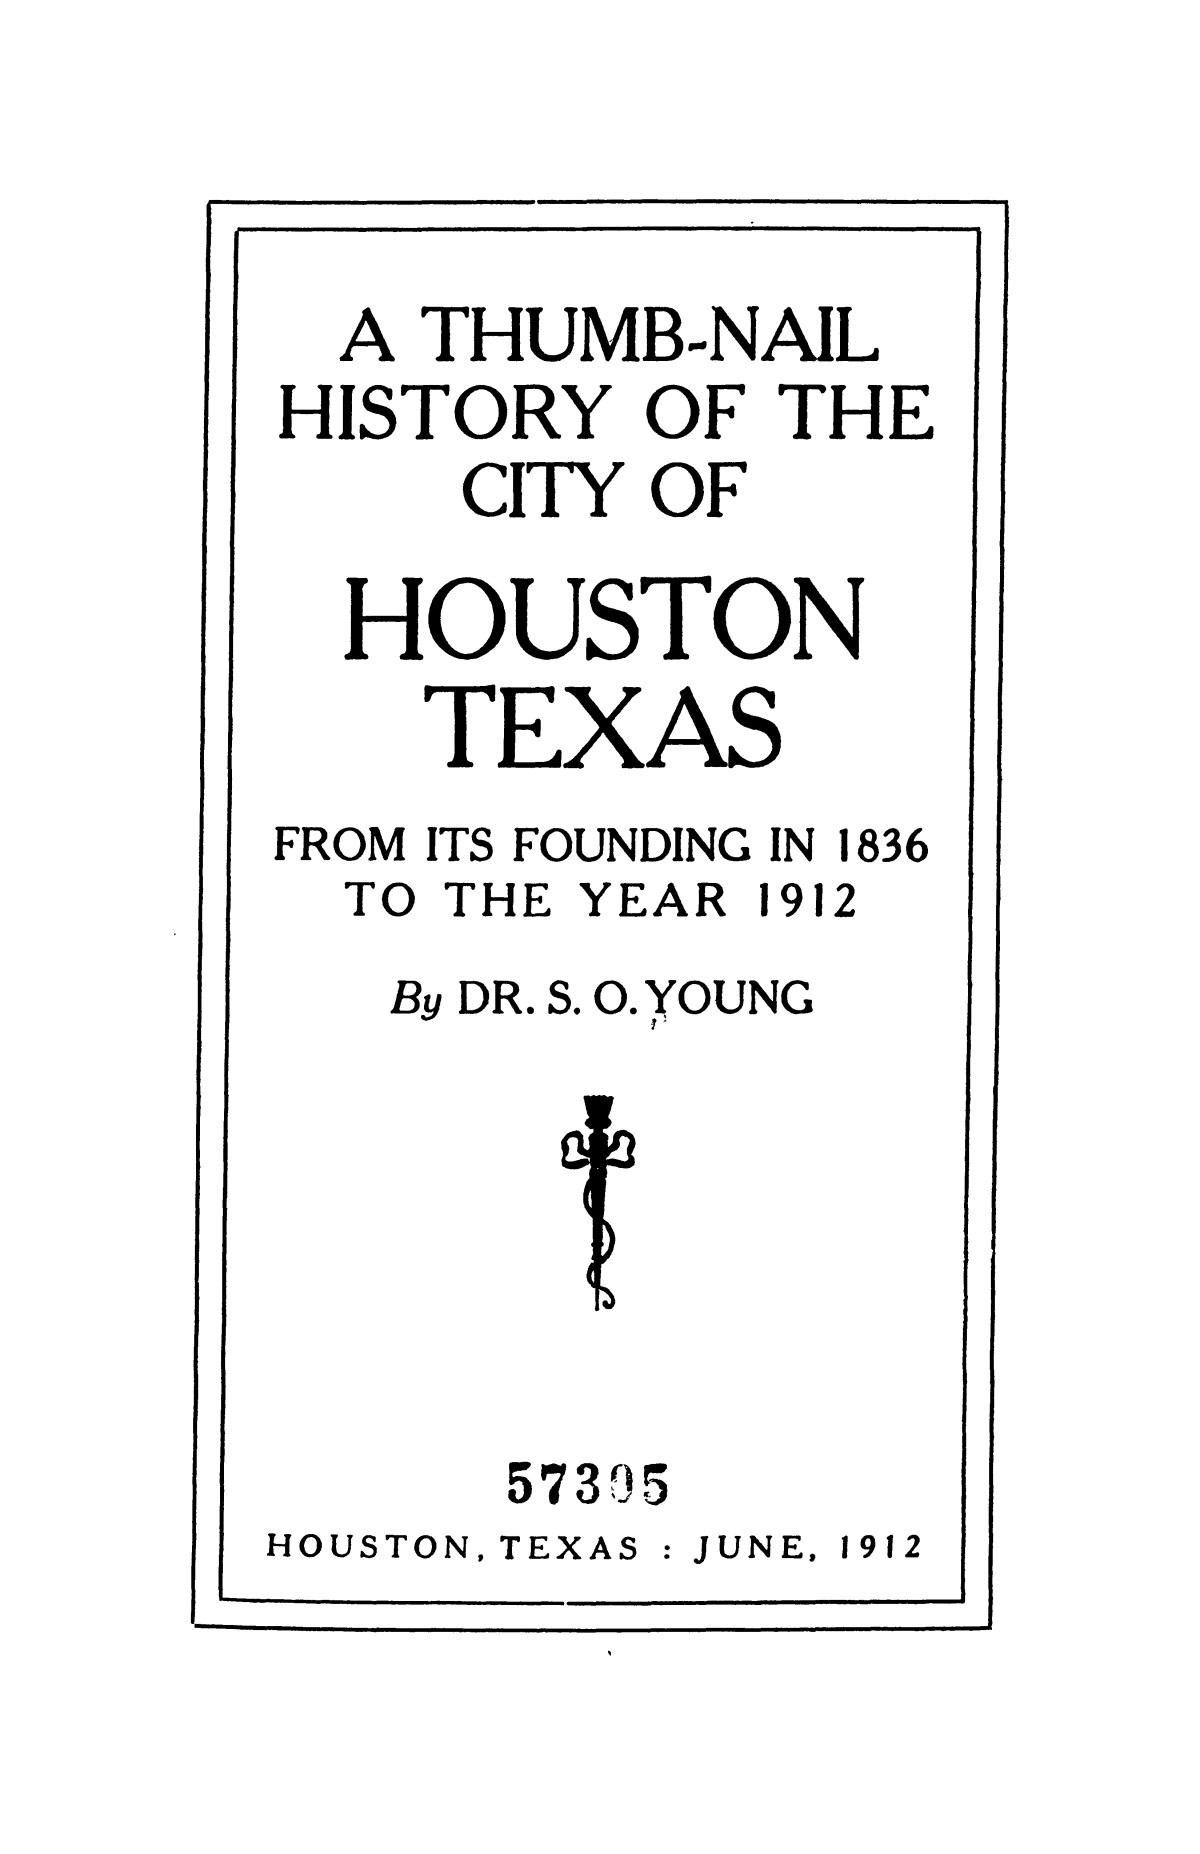 A thumb-nail history of the city of Houston, Texas, from its founding in 1836 to the year 1912                                                                                                      1